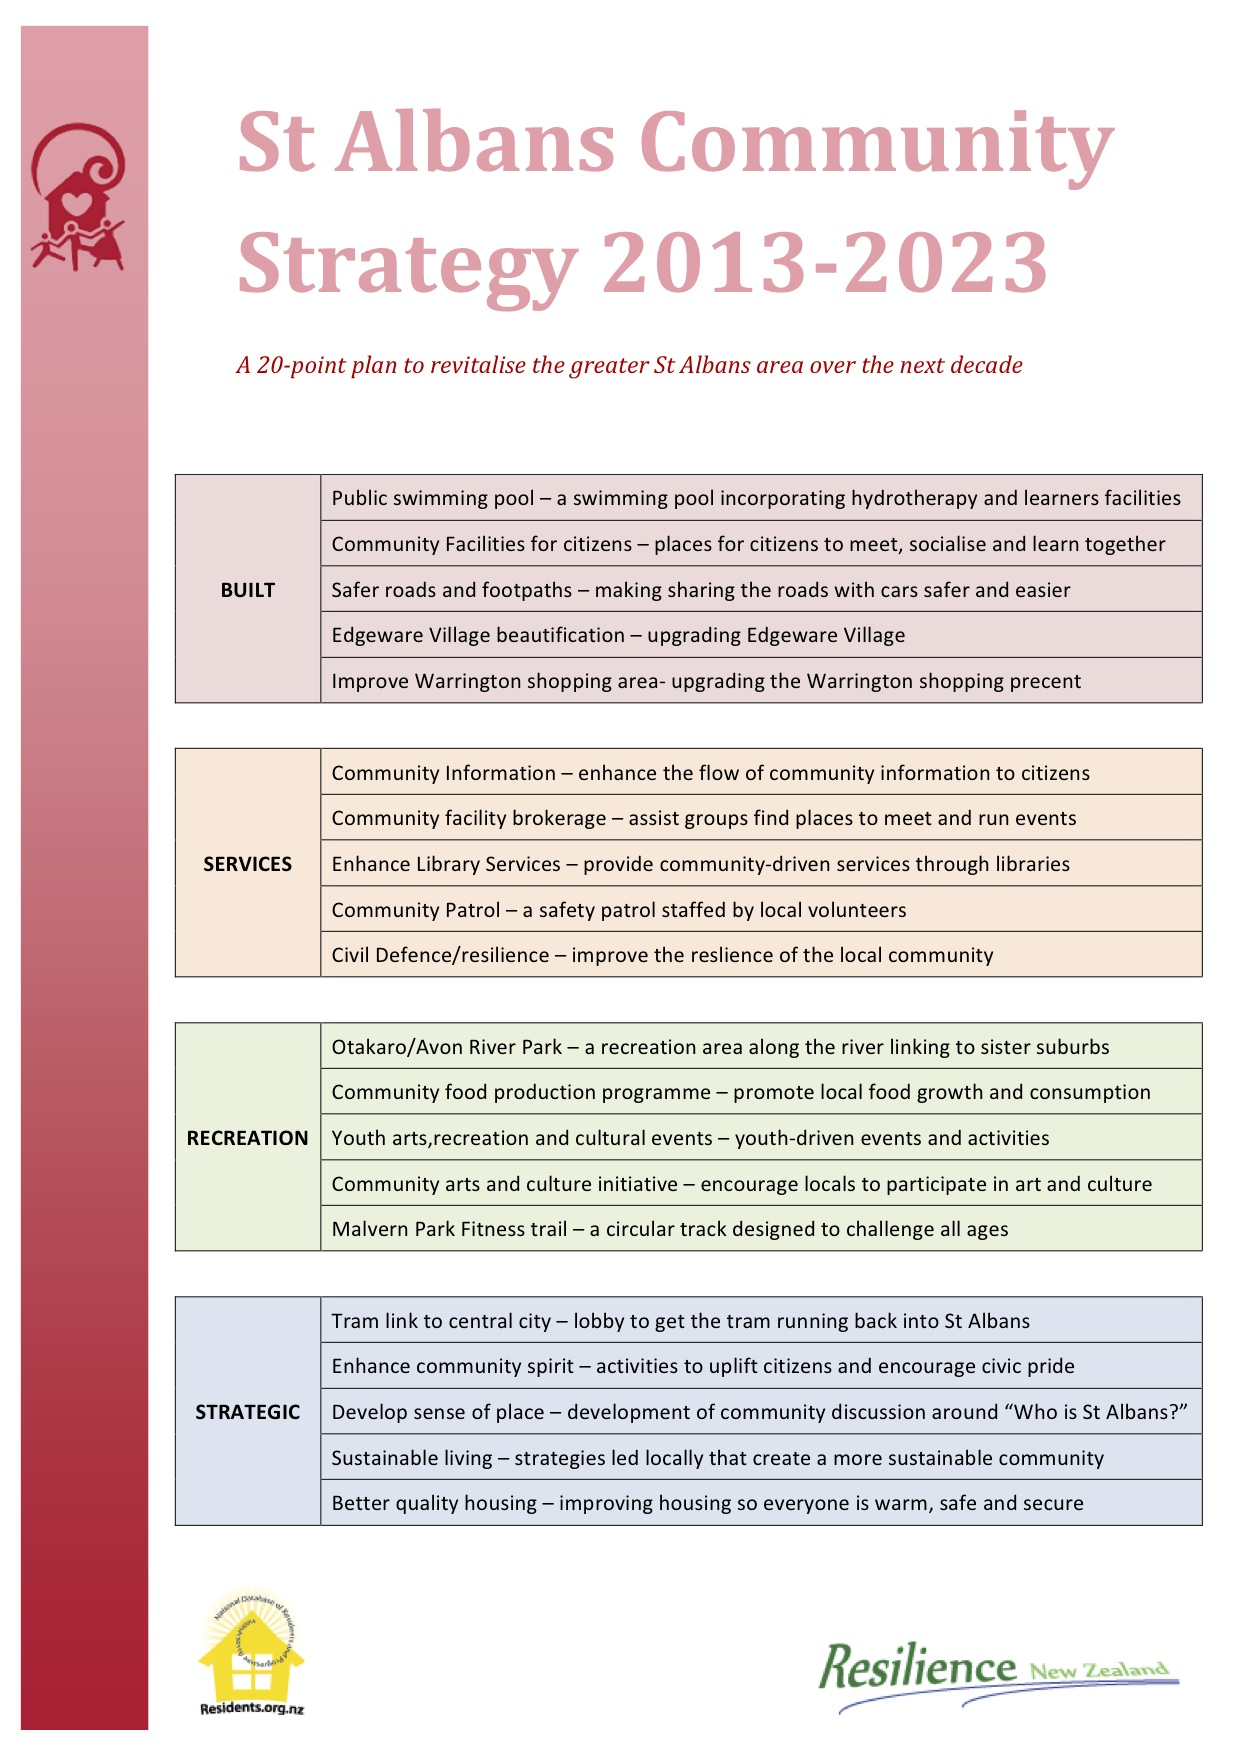 St-Albans-Community-Strategy-2013-2023-Projects